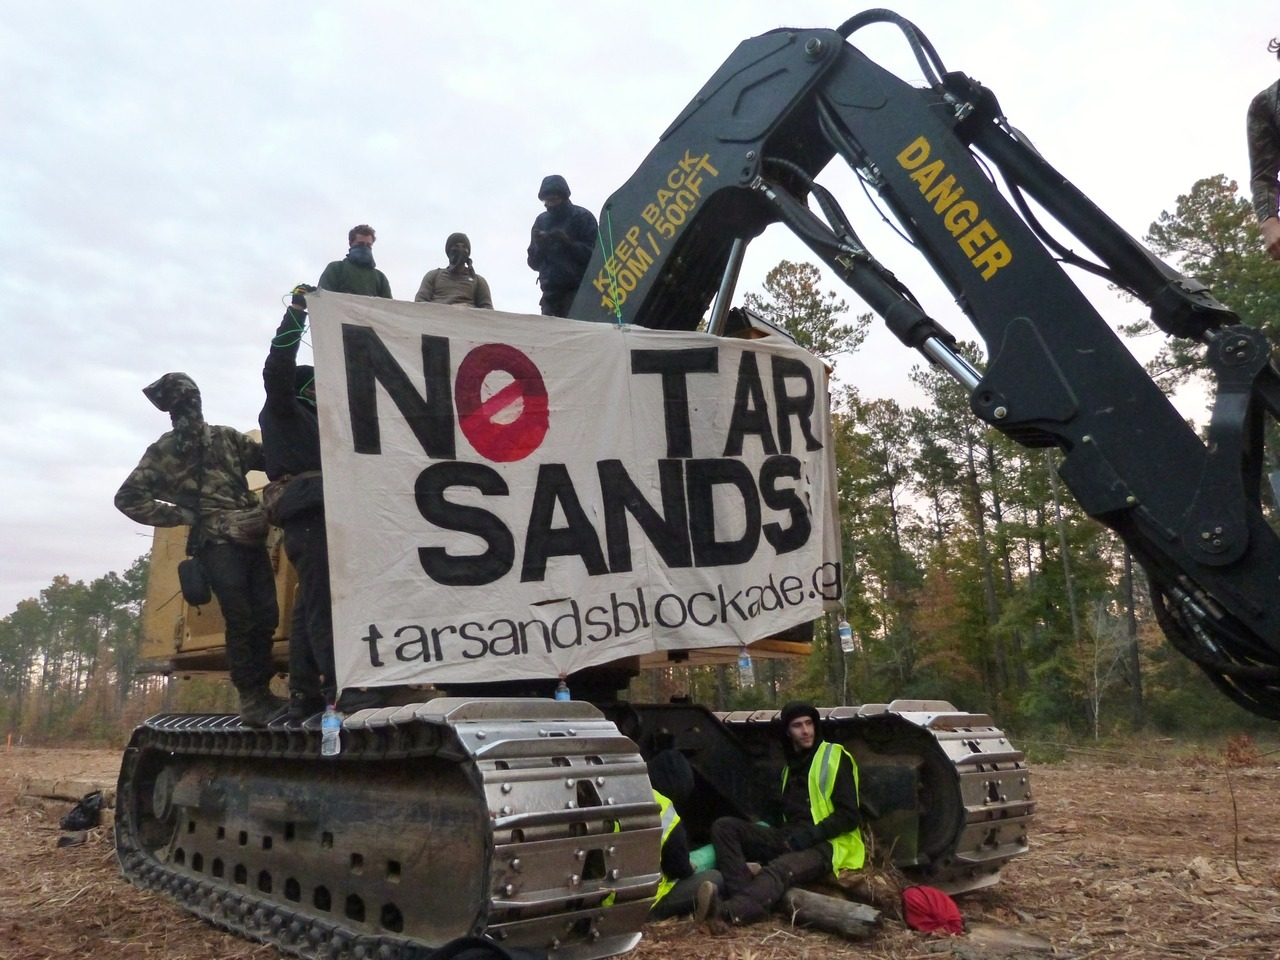 Here's just a preview of the Tar Sands Blockade mass action to stop the Keystone XL pipeline today in Nacogdoches, Texas: Four blockaders locked themselves down to construction and land clearing equipment early this morning. Two blockaders were pepper-sprayed, all four were arrested and two direct support comrades were also arrested. Police used excessive force, especially when removing protesters from the land. Officers also refused to wipe the faces of the two blockaders who were pepper sprayed, leaving them covered in painful chemicals. They were all also refused water onsite. All six were released a couple of hours later. In an attempt to stop the cherry picker from extracting three tree-sitters, a swarm of protesters stood in the road to prevent the machine's passing. A police officer immediately defended the machinery and pepper-sprayed the crowd without warning, striking a 75-year-old woman, a Nacogdoches resident and others at point blank. Two were arrested for blocking the road. Another comrade was also arrested at the tree-sit site. Three tree-sitters (photos of this awesome protest coming soon) were extracted from their platforms by a cherry picker this afternoon. They were all arrested, two were strip searched and all tree-sitters are still in jail. The charges against them are still unknown. Earlier in the day, east Texas residents and Tar Sands Blockade supporters held a rally in solidarity with the blockaders & tree-sitters. Solidarity actions were held in more than 40 cities worldwide.  Click here if you want to donate to help Tar Sands Blockade continue their great work! More details & tons of photos coming soon, so stay tuned.